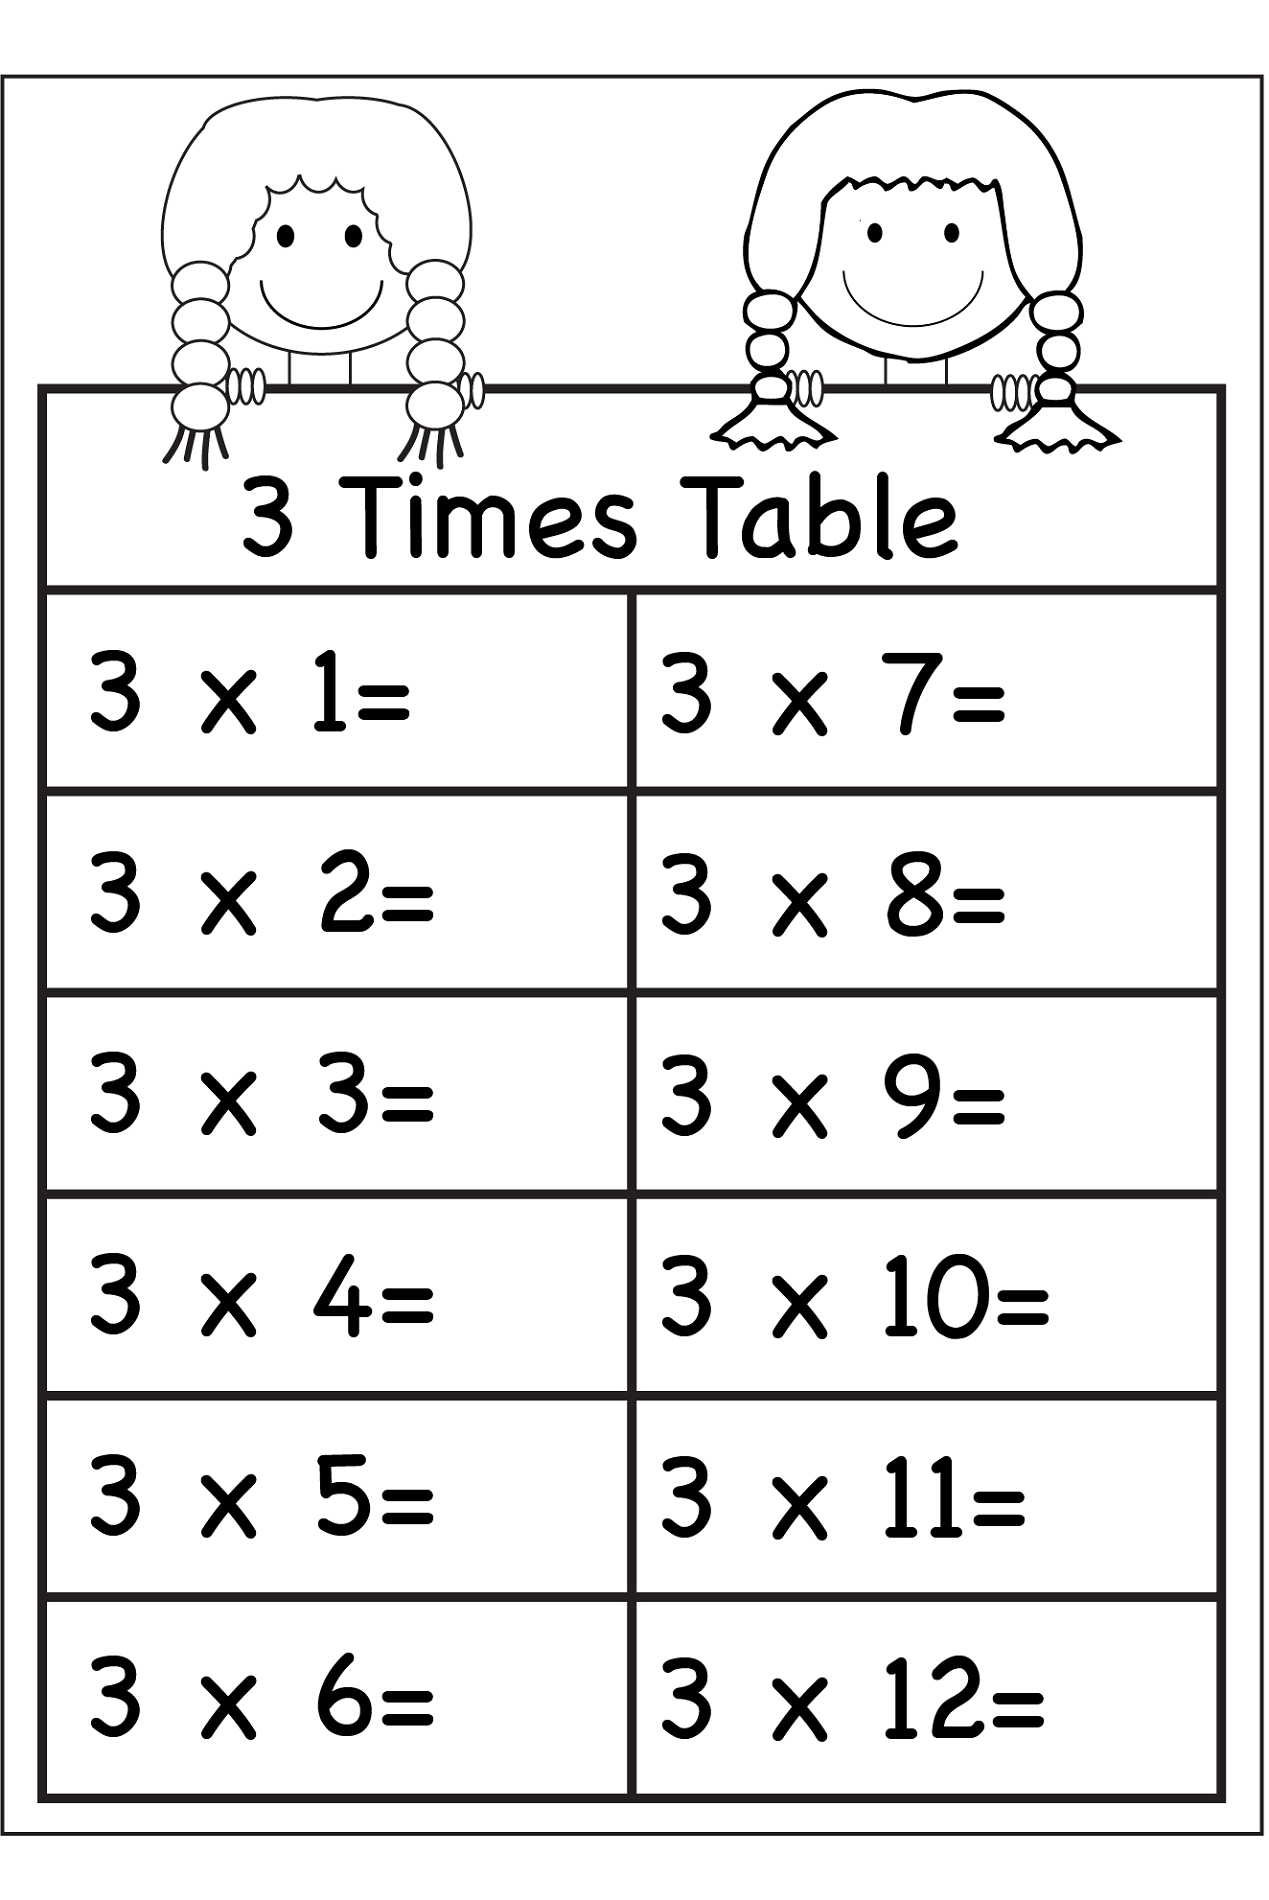 3 times table worksheets activity shelter for Table multiplication 3